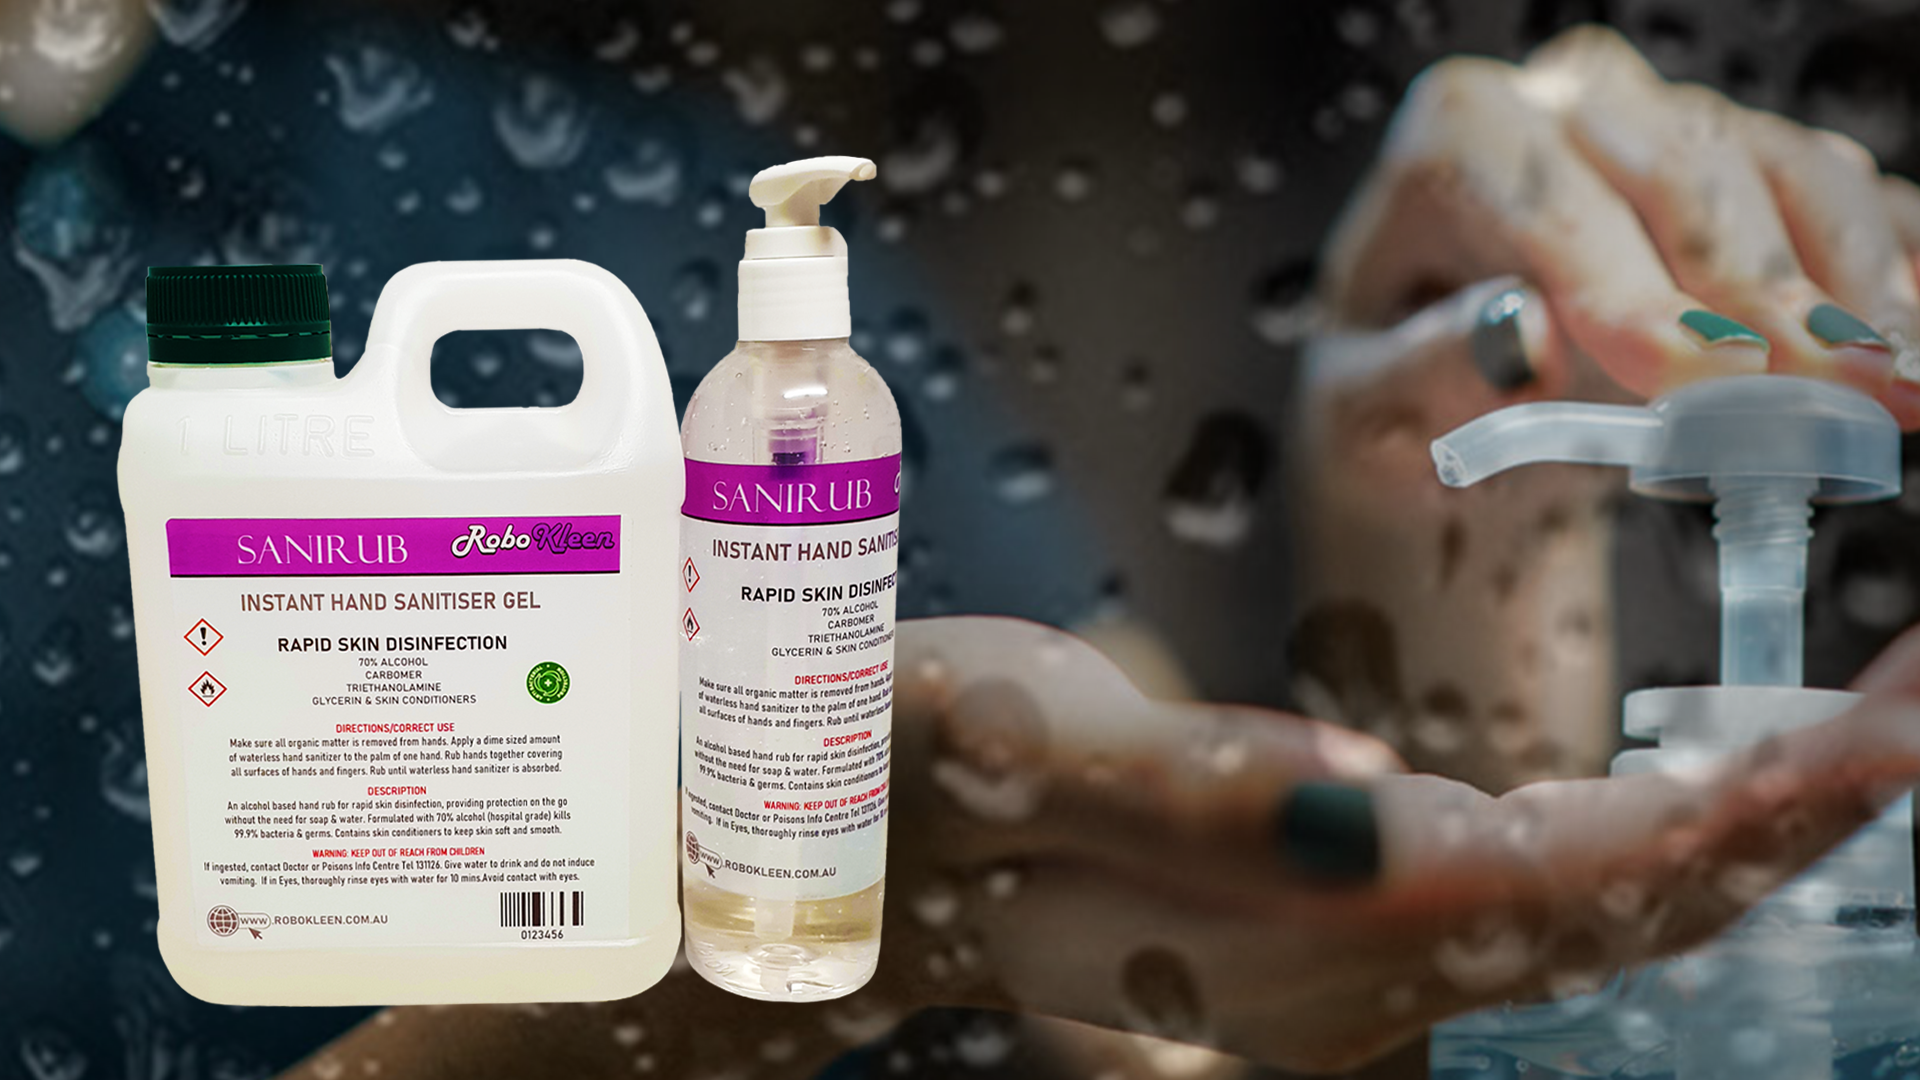 Sanirub rapid skin disinfection